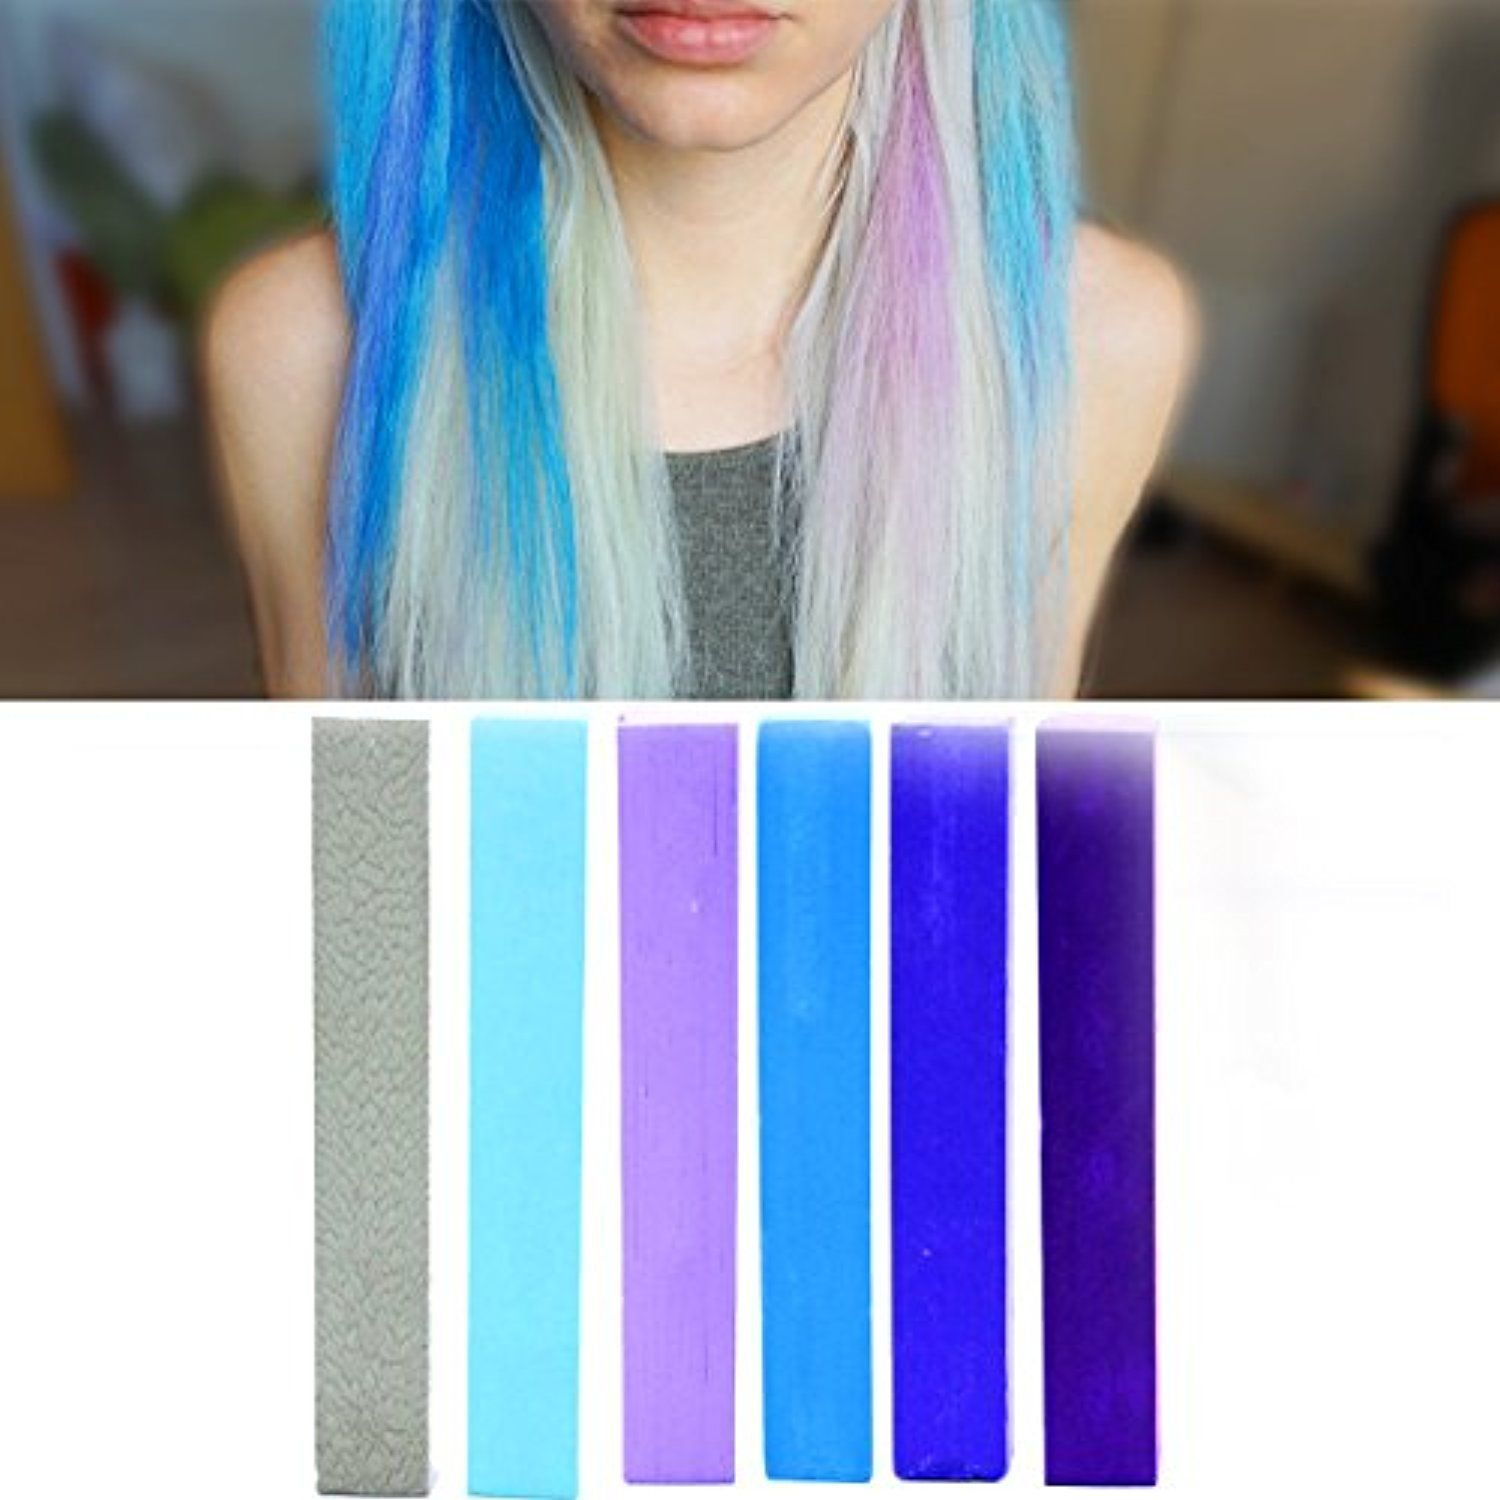 Lilac blue miley cyrus ombre hair color sky blue hair color with